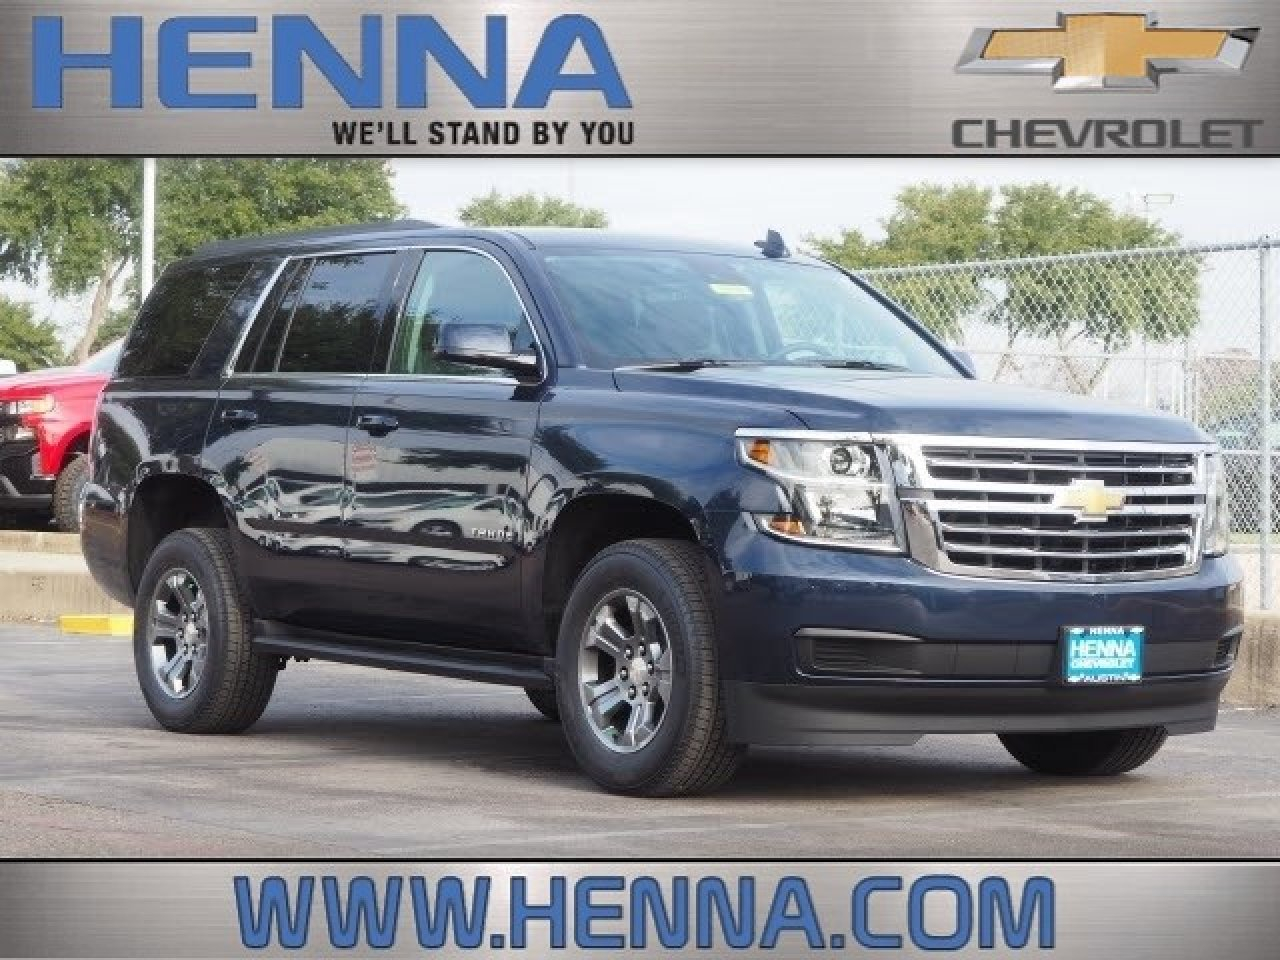 2020 Chevrolet Tahoe Ls 1Gnscakc3Lr241085   Henna Chevrolet Is A 2021 Chevy Traverse Flat Towable Cost, Battery Location, Bumper